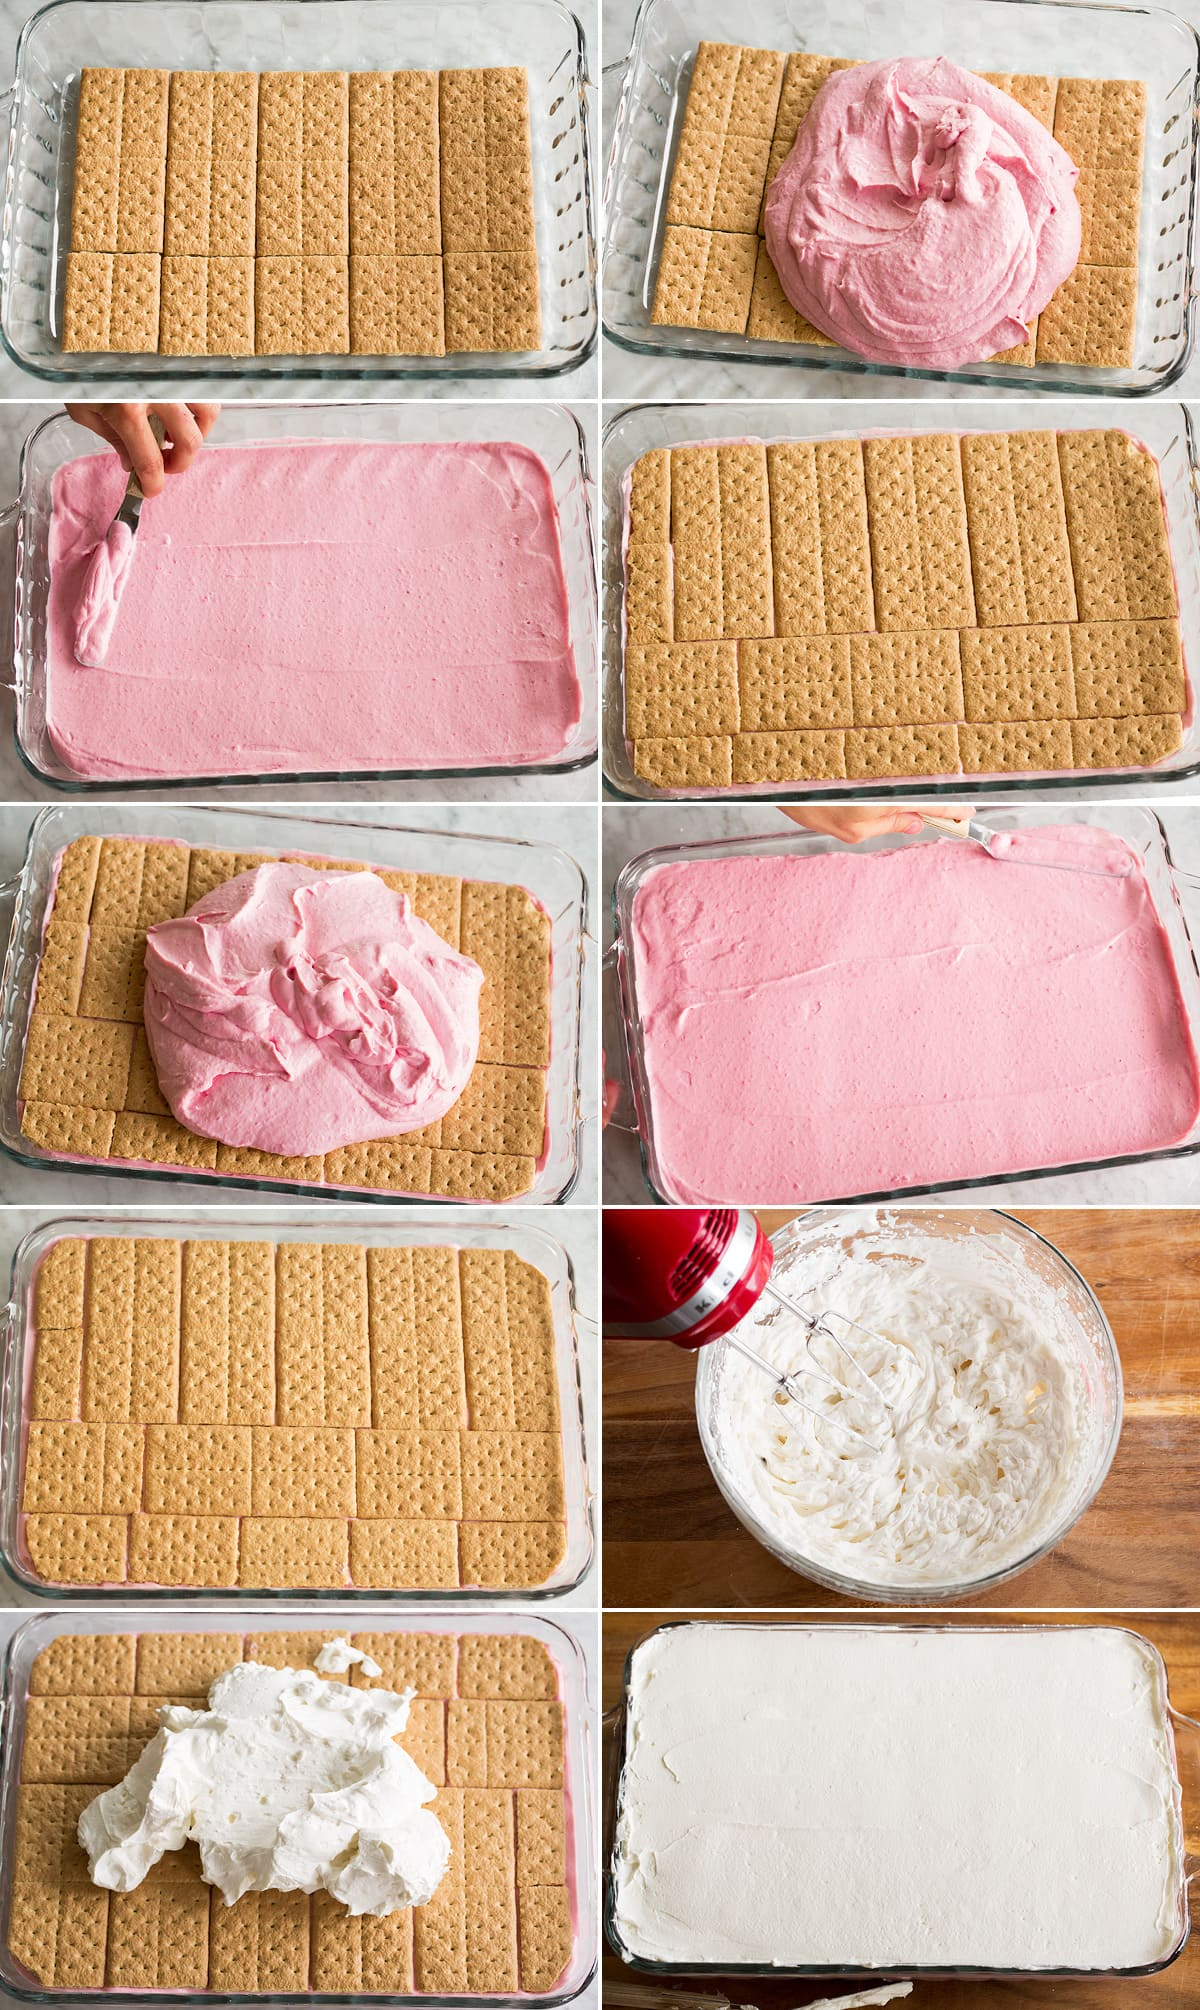 Collage of 10 images showing how to layer an icebox cake.